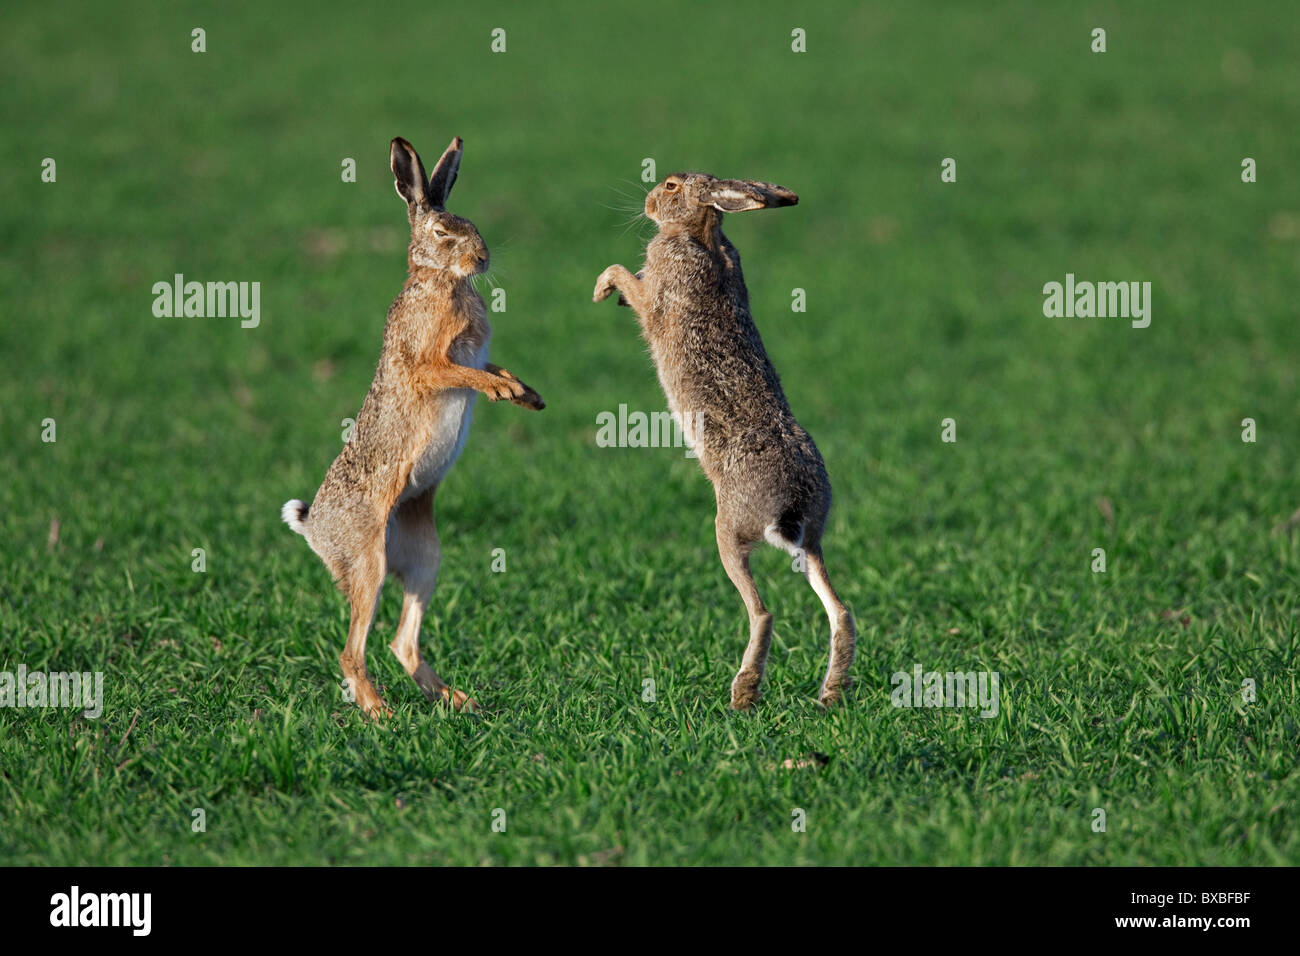 European Brown Hares (Lepus europaeus) boxing / fighting in field during the breeding season, Germany Stock Photo